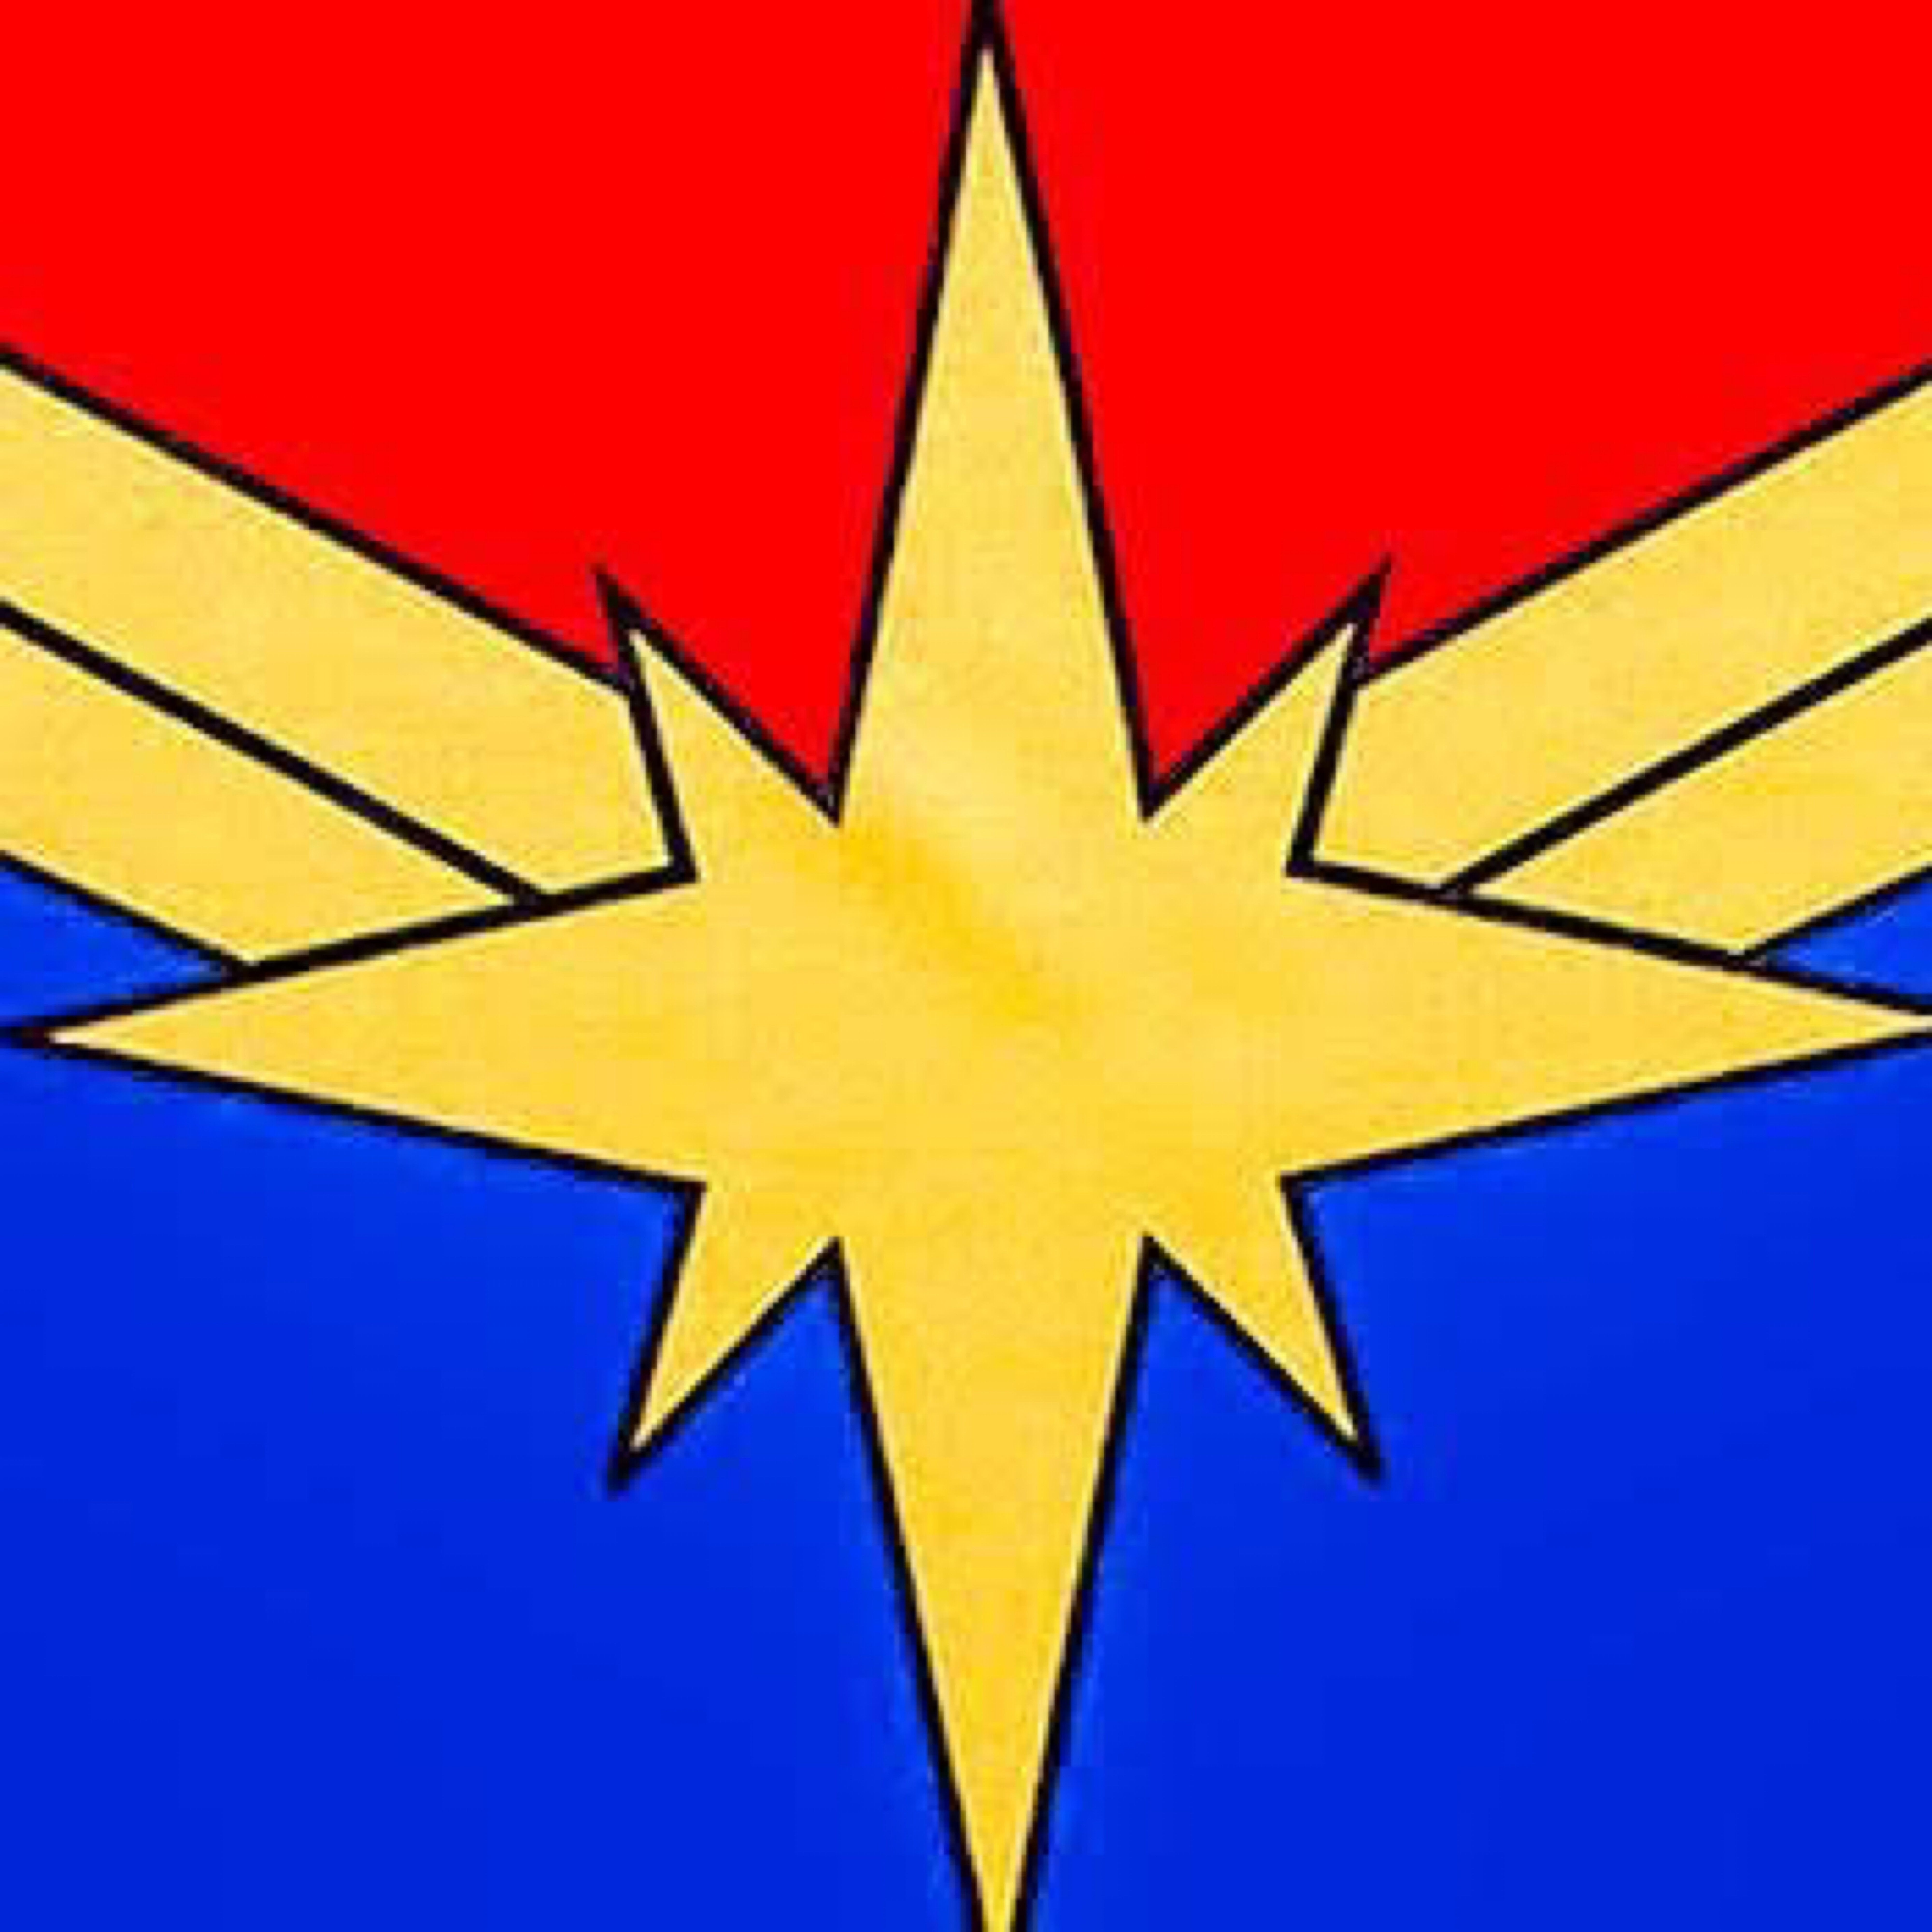 An older style version of the Captain Marvel logo.